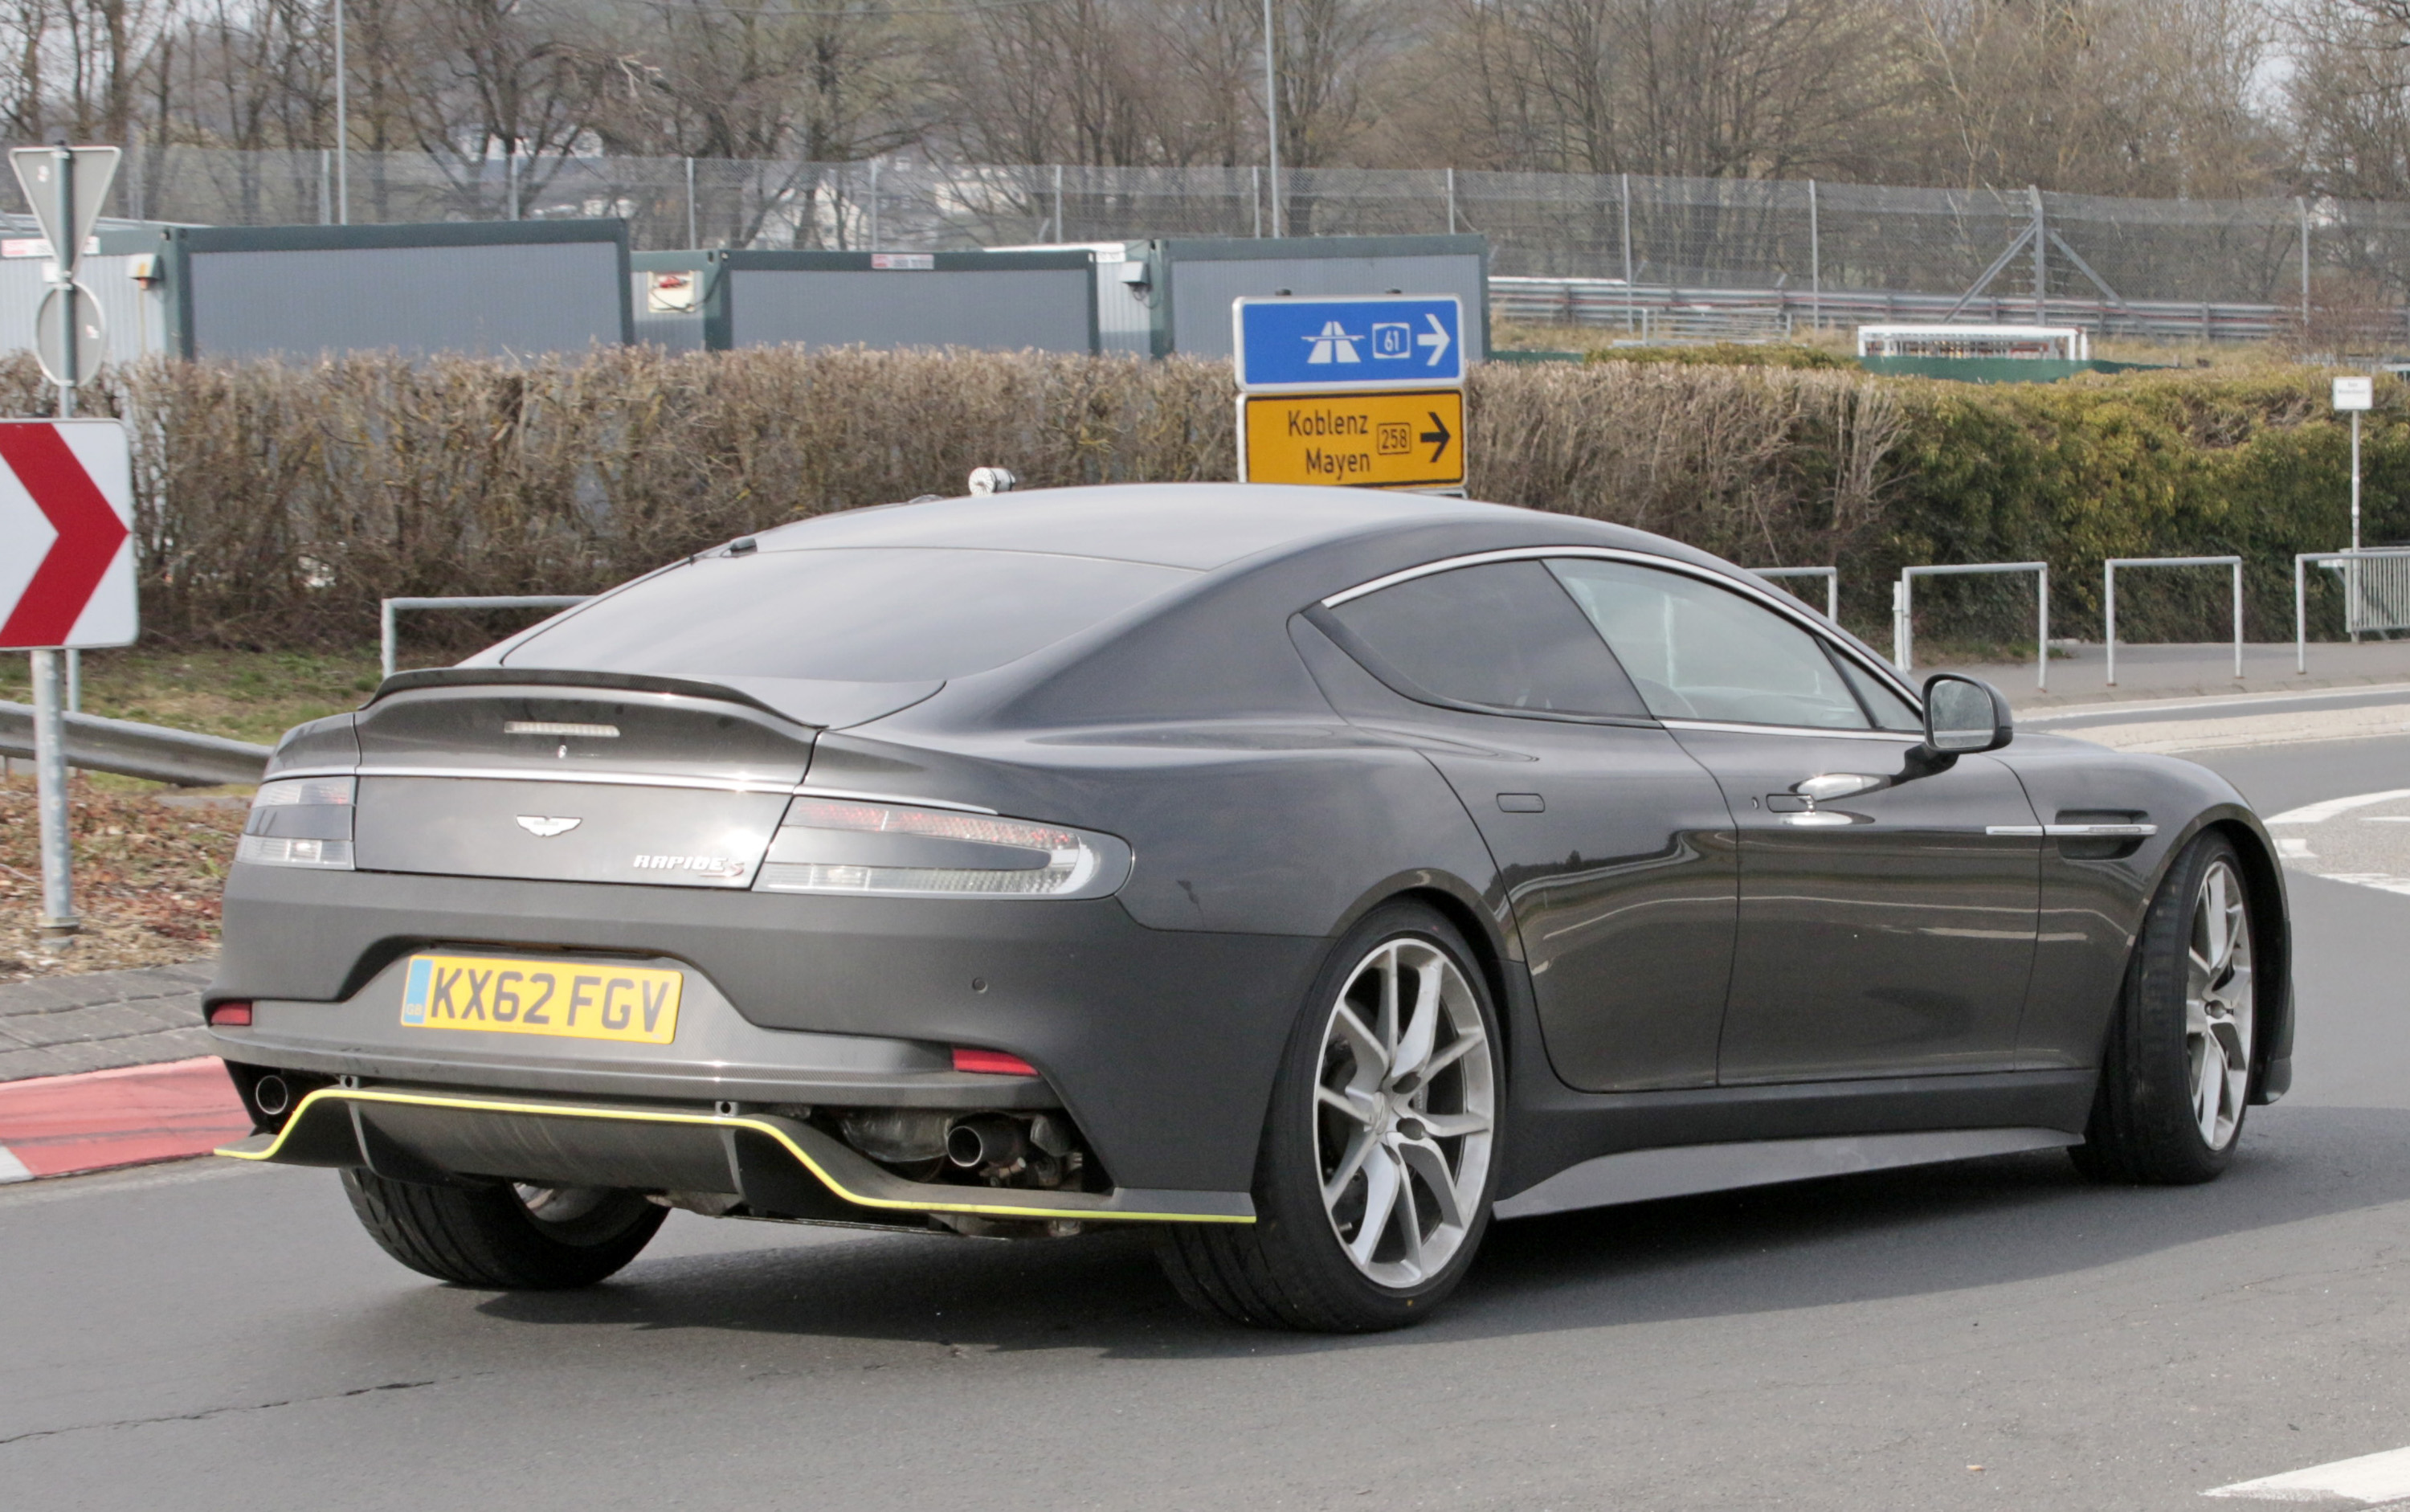 Aston Martin Rapide AMR Top Speed - Aston martin four door